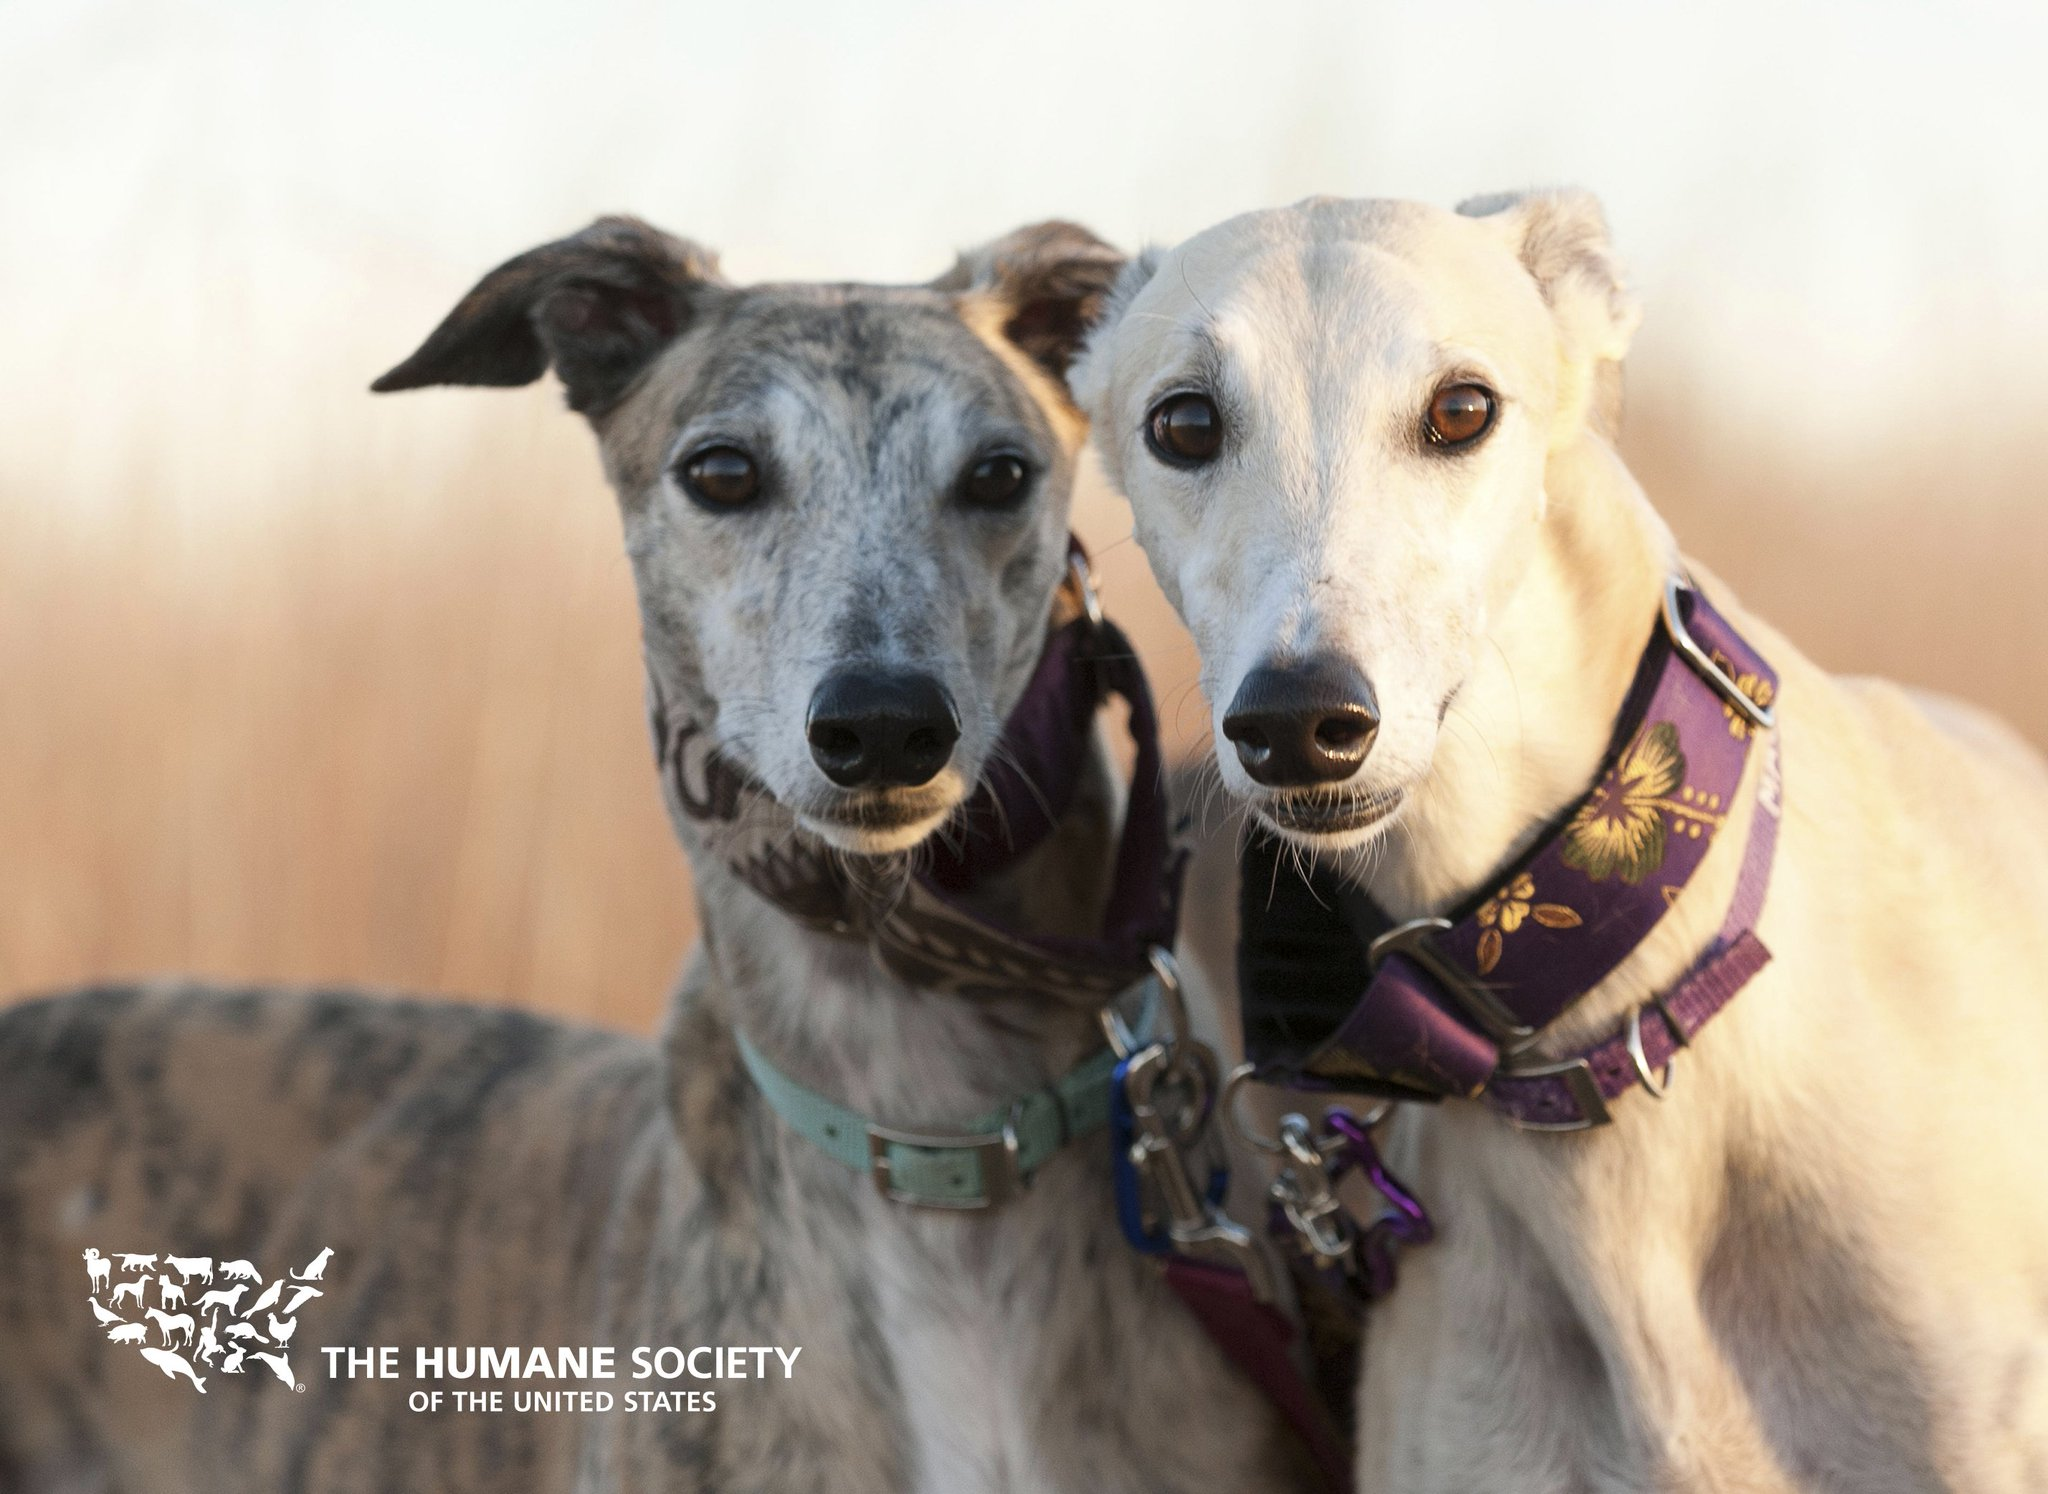 Good news! #Florida is now one step closer to phasing out greyhound racing: https://t.co/JyR4hCUktr https://t.co/cL8V7JOWe3